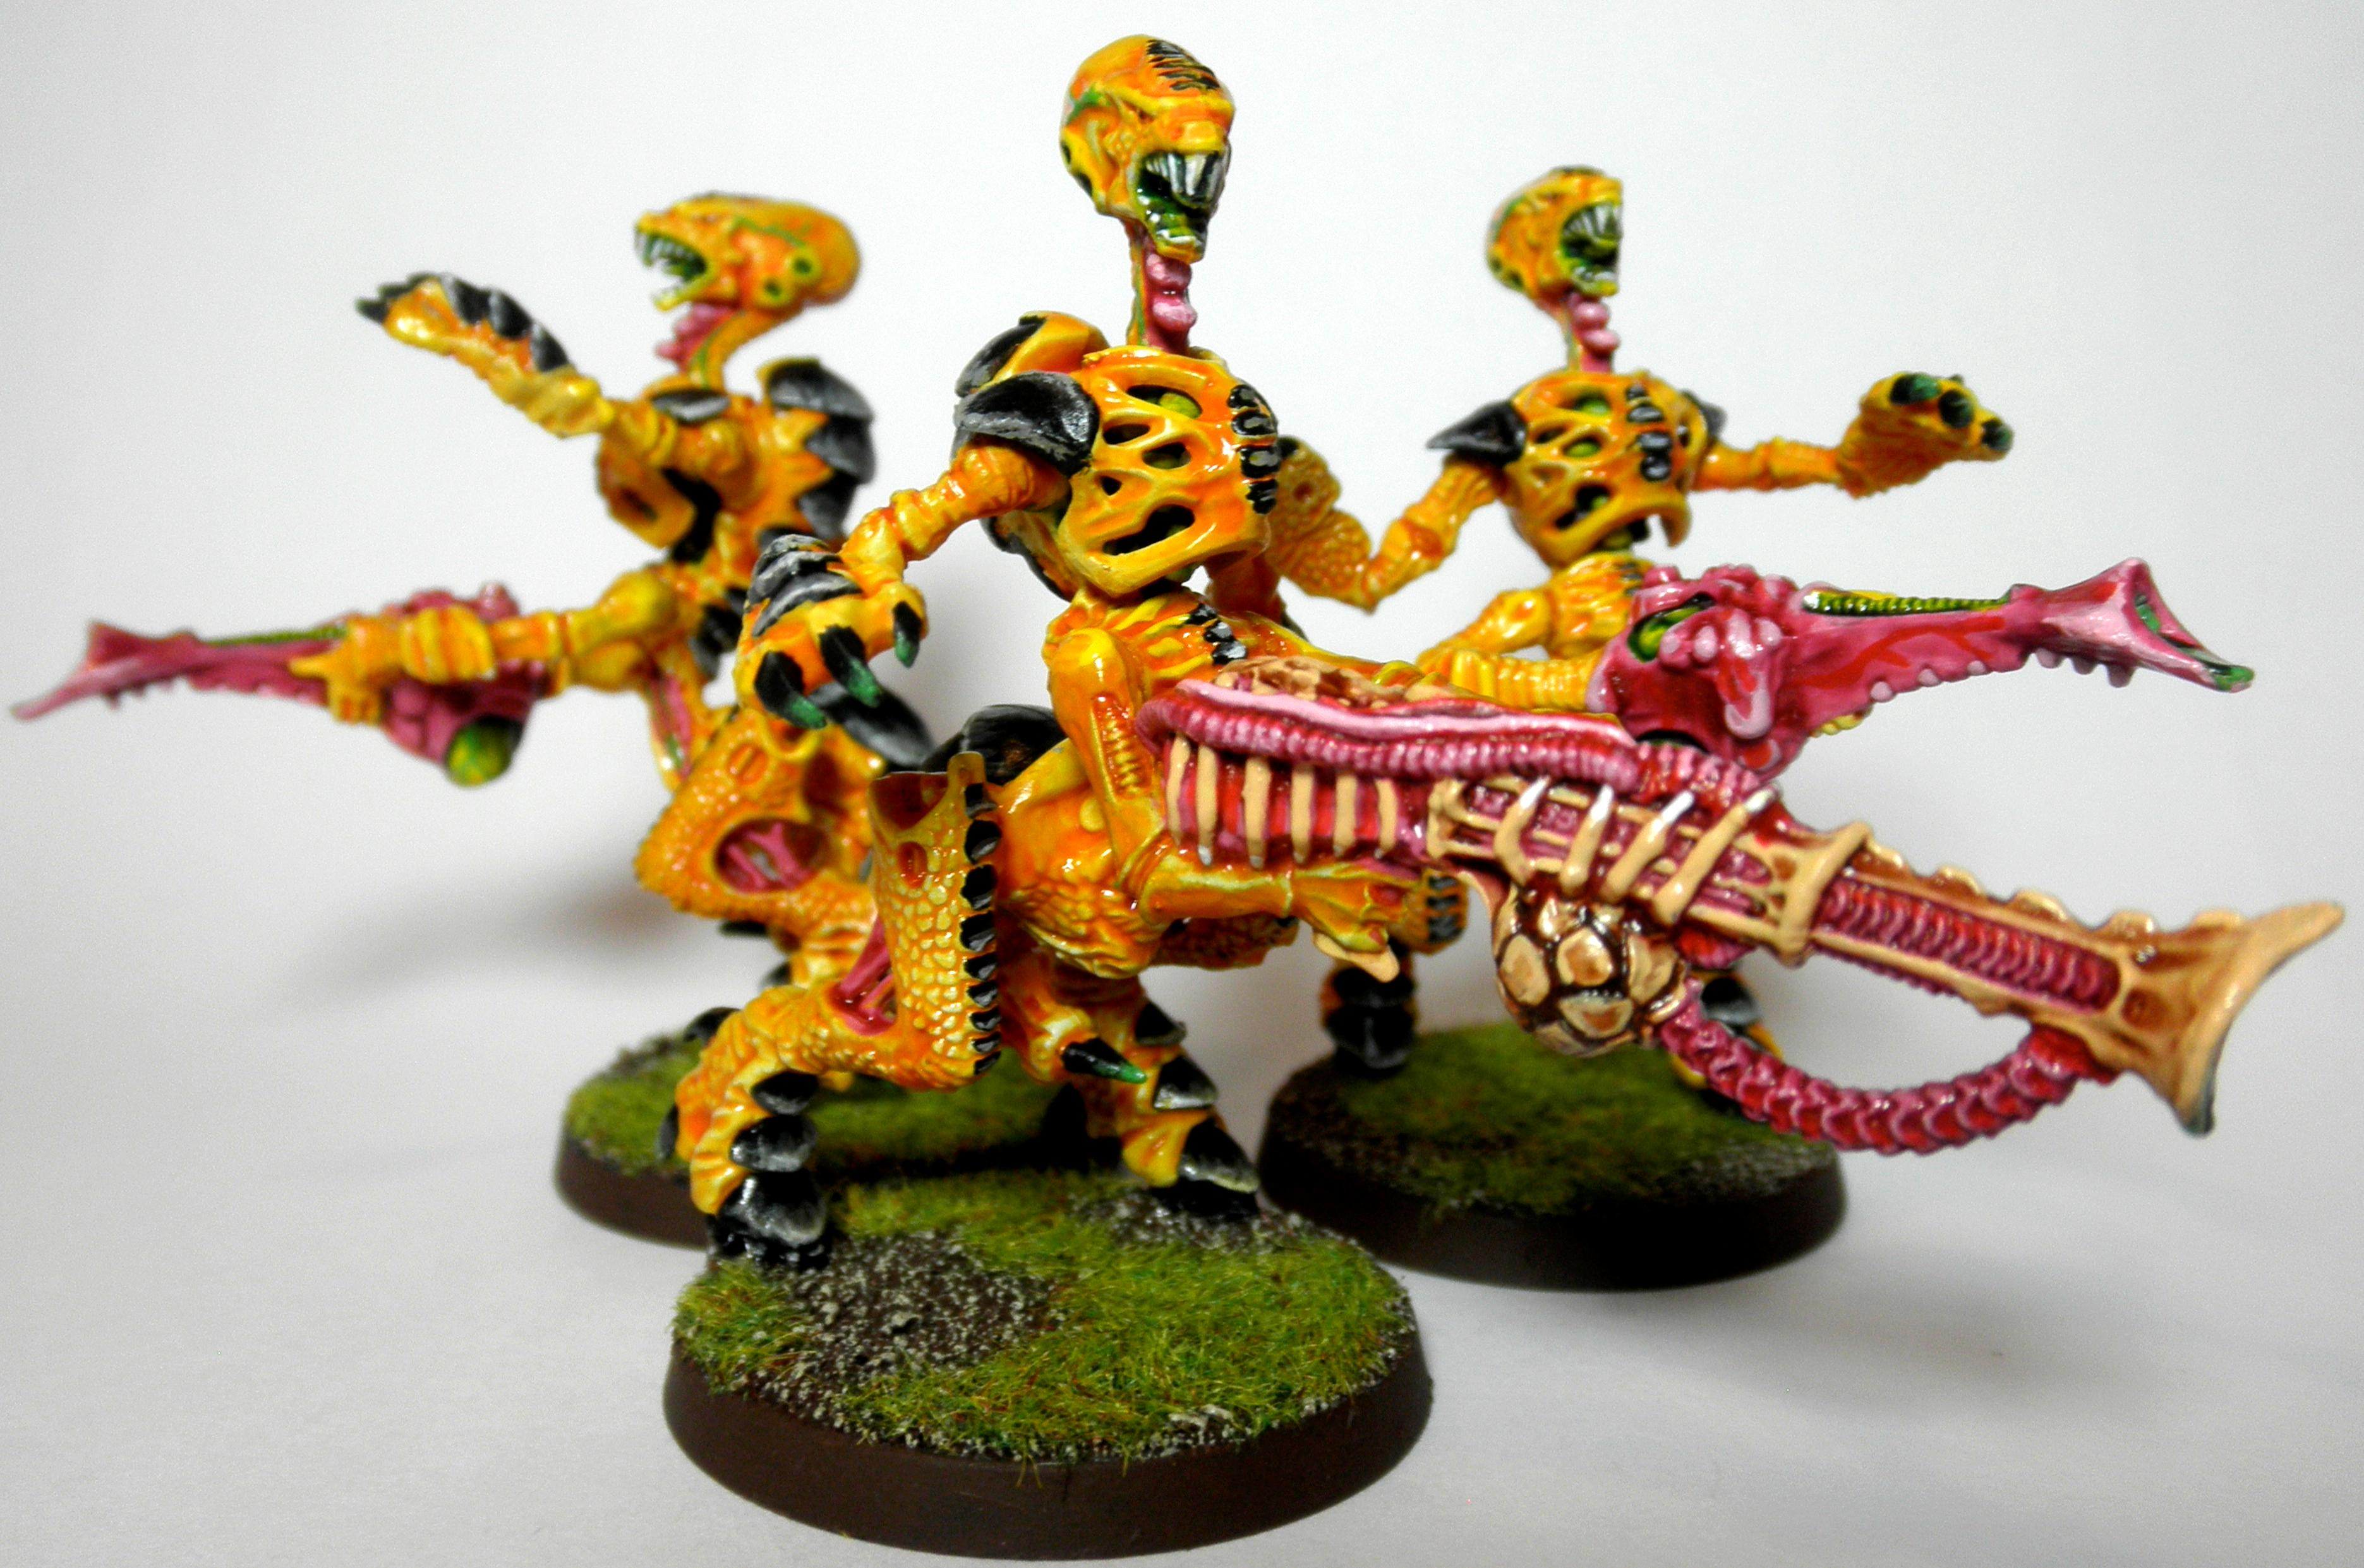 1st, 2nd, Barbed Stranler, Bright, Conversion, Death Spitter, Rouge Trader, Tyranids, Yellow